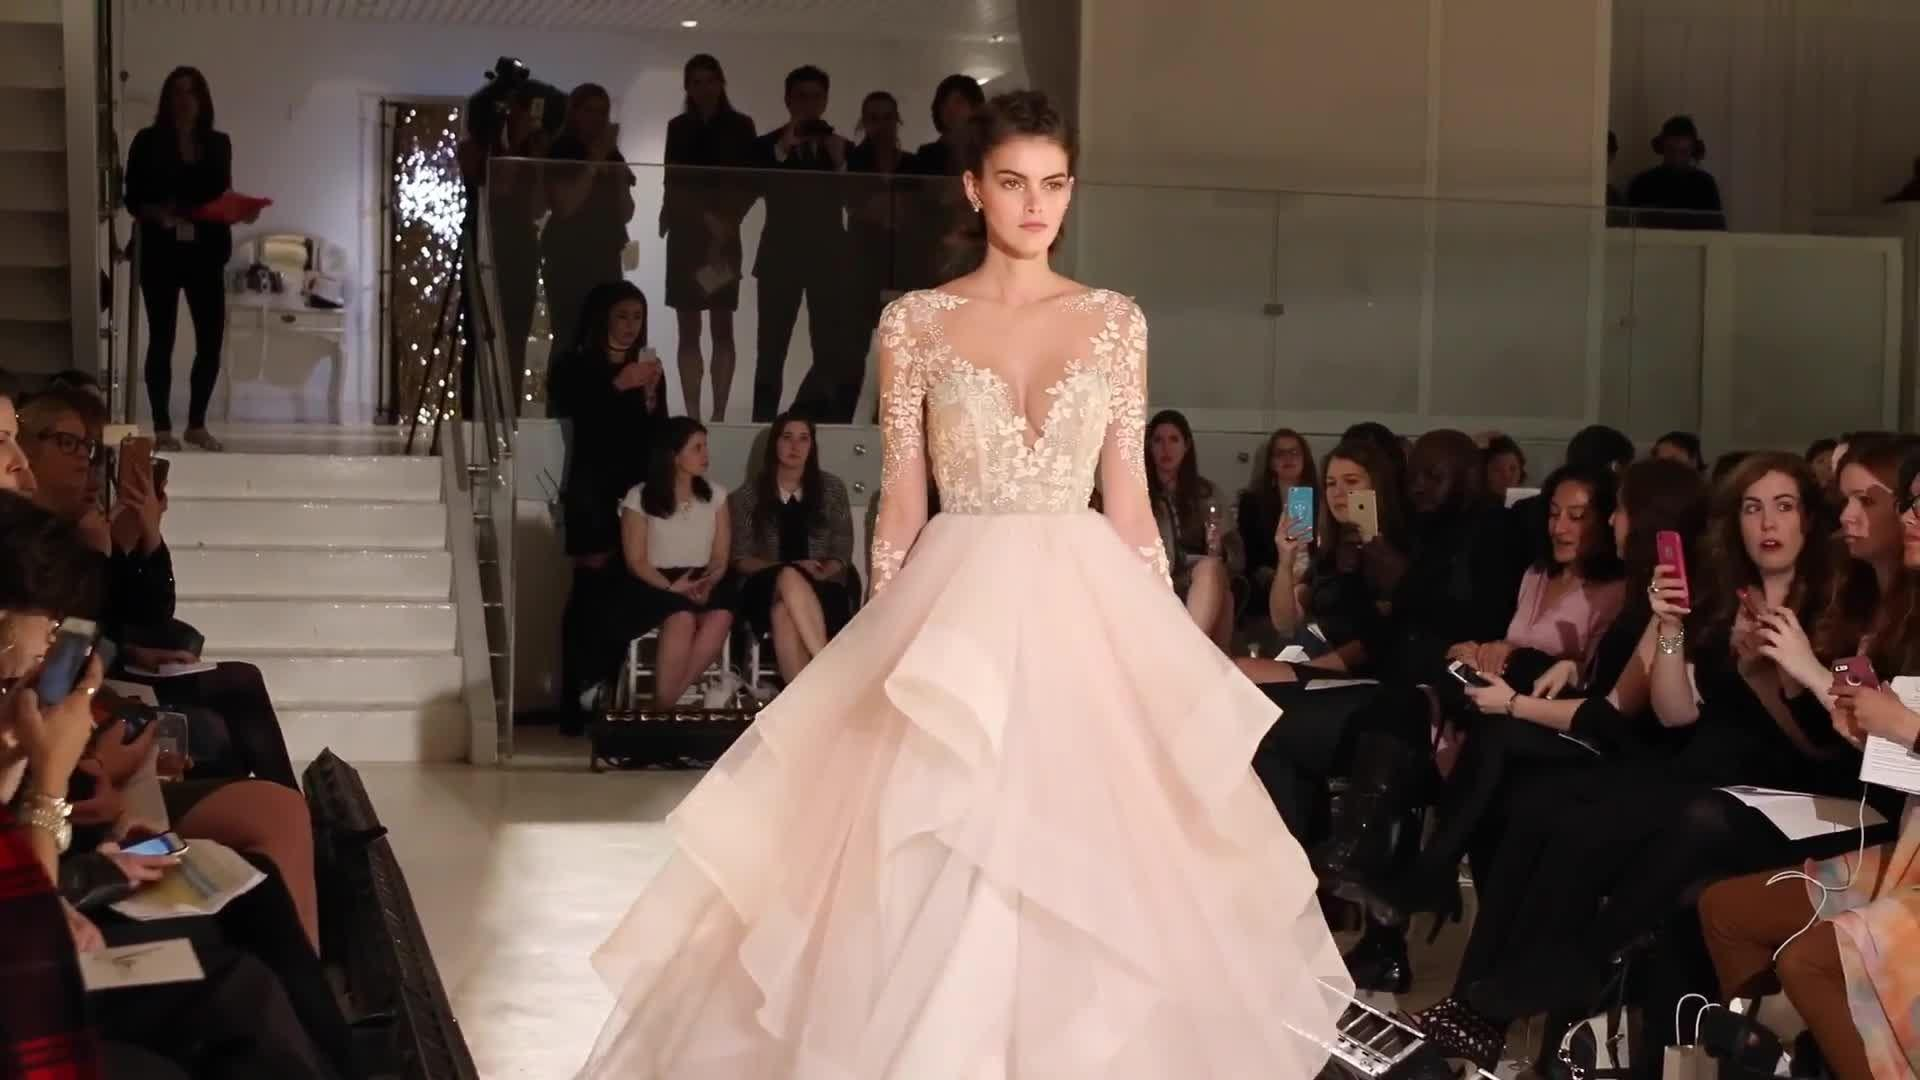 Haley Paige Shares Her Favorite Things About Weddings